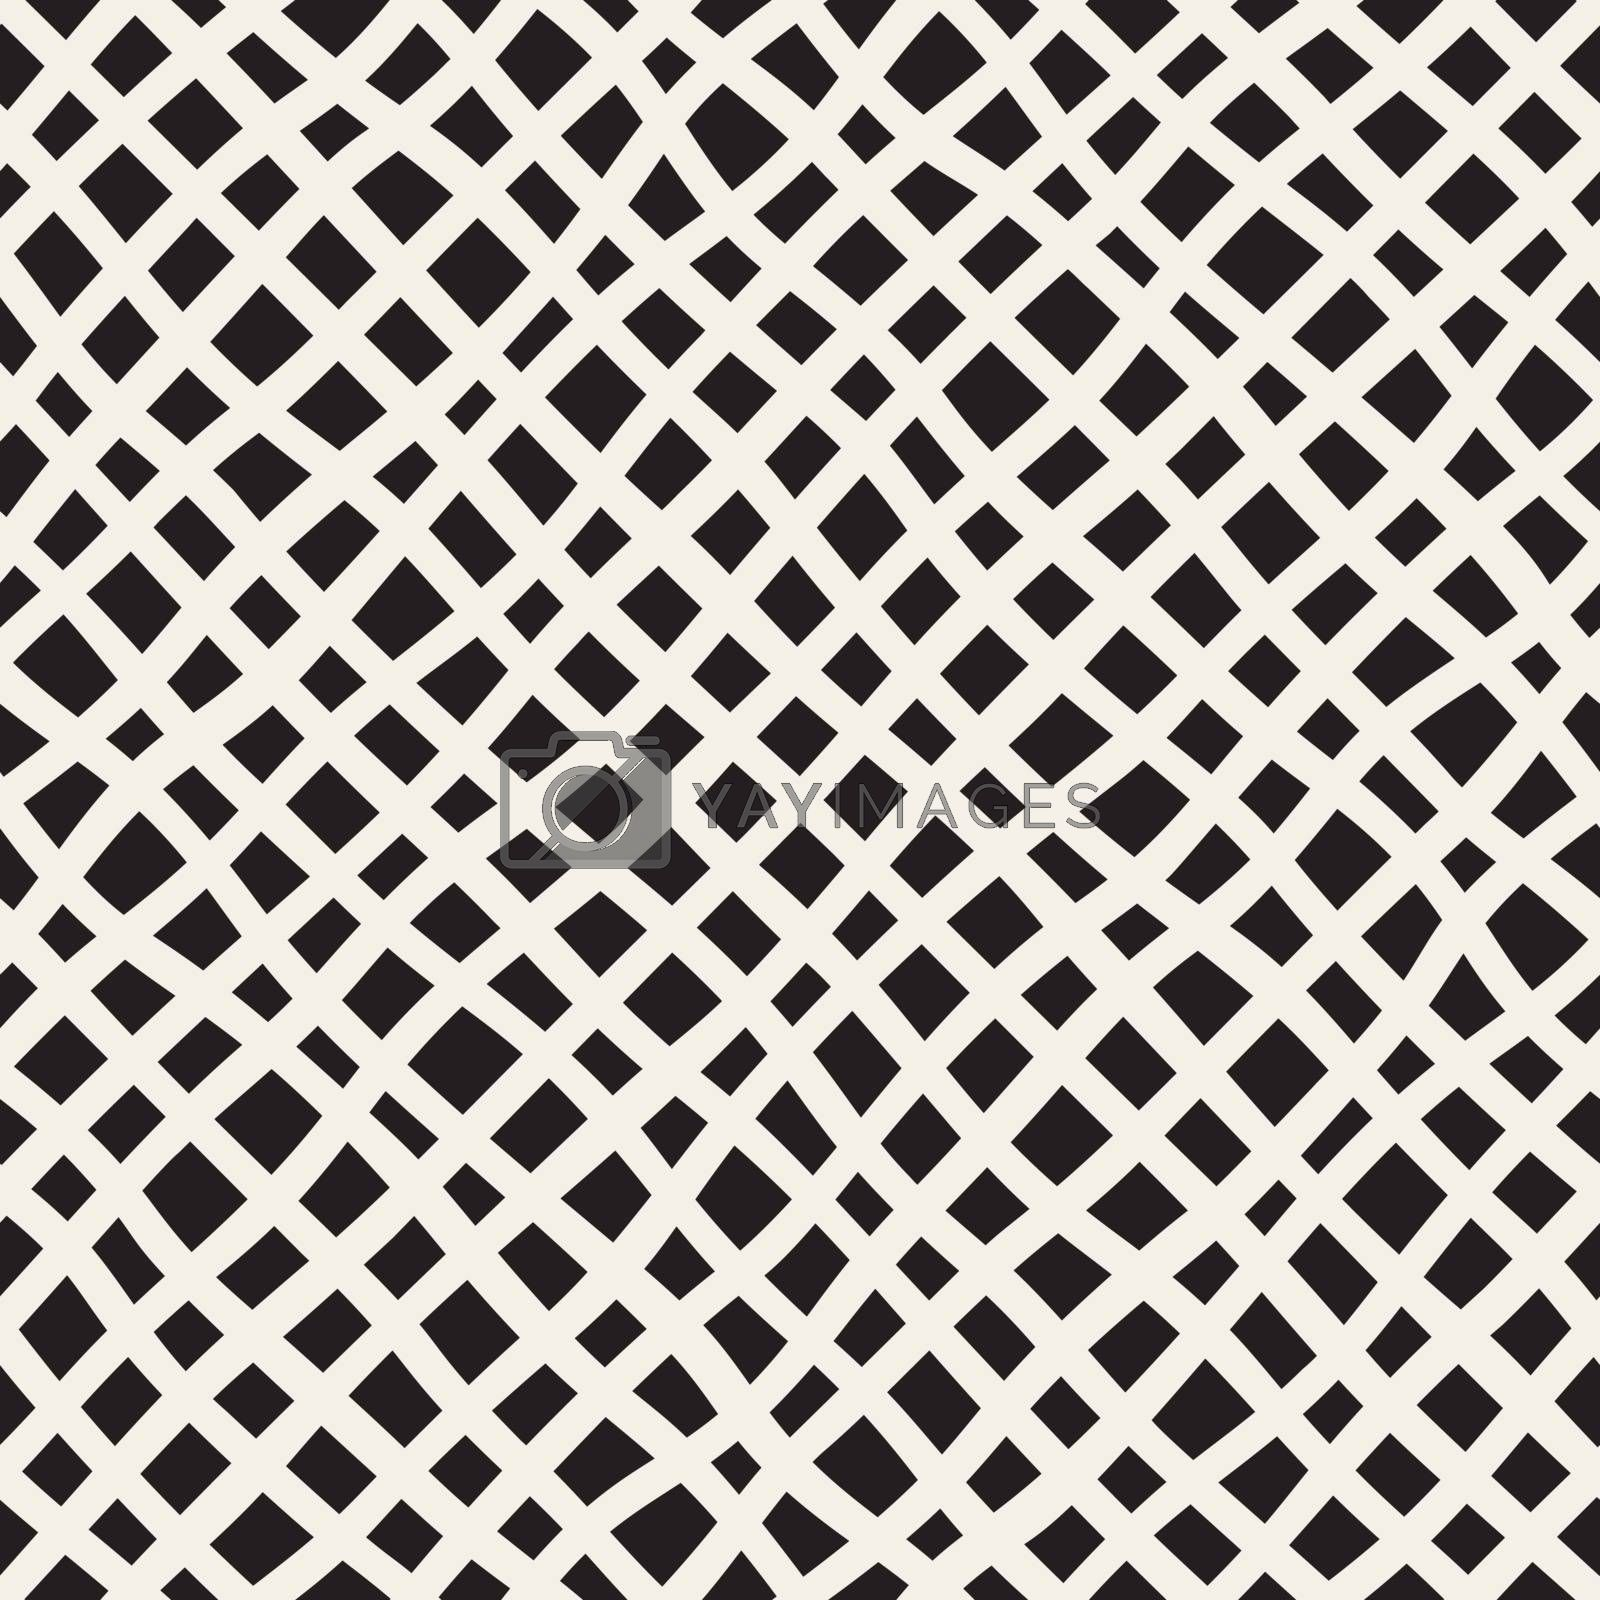 Vector Seamless Hand Drawn Diagonal Grid Pattern. Abstract Freehand Background Design